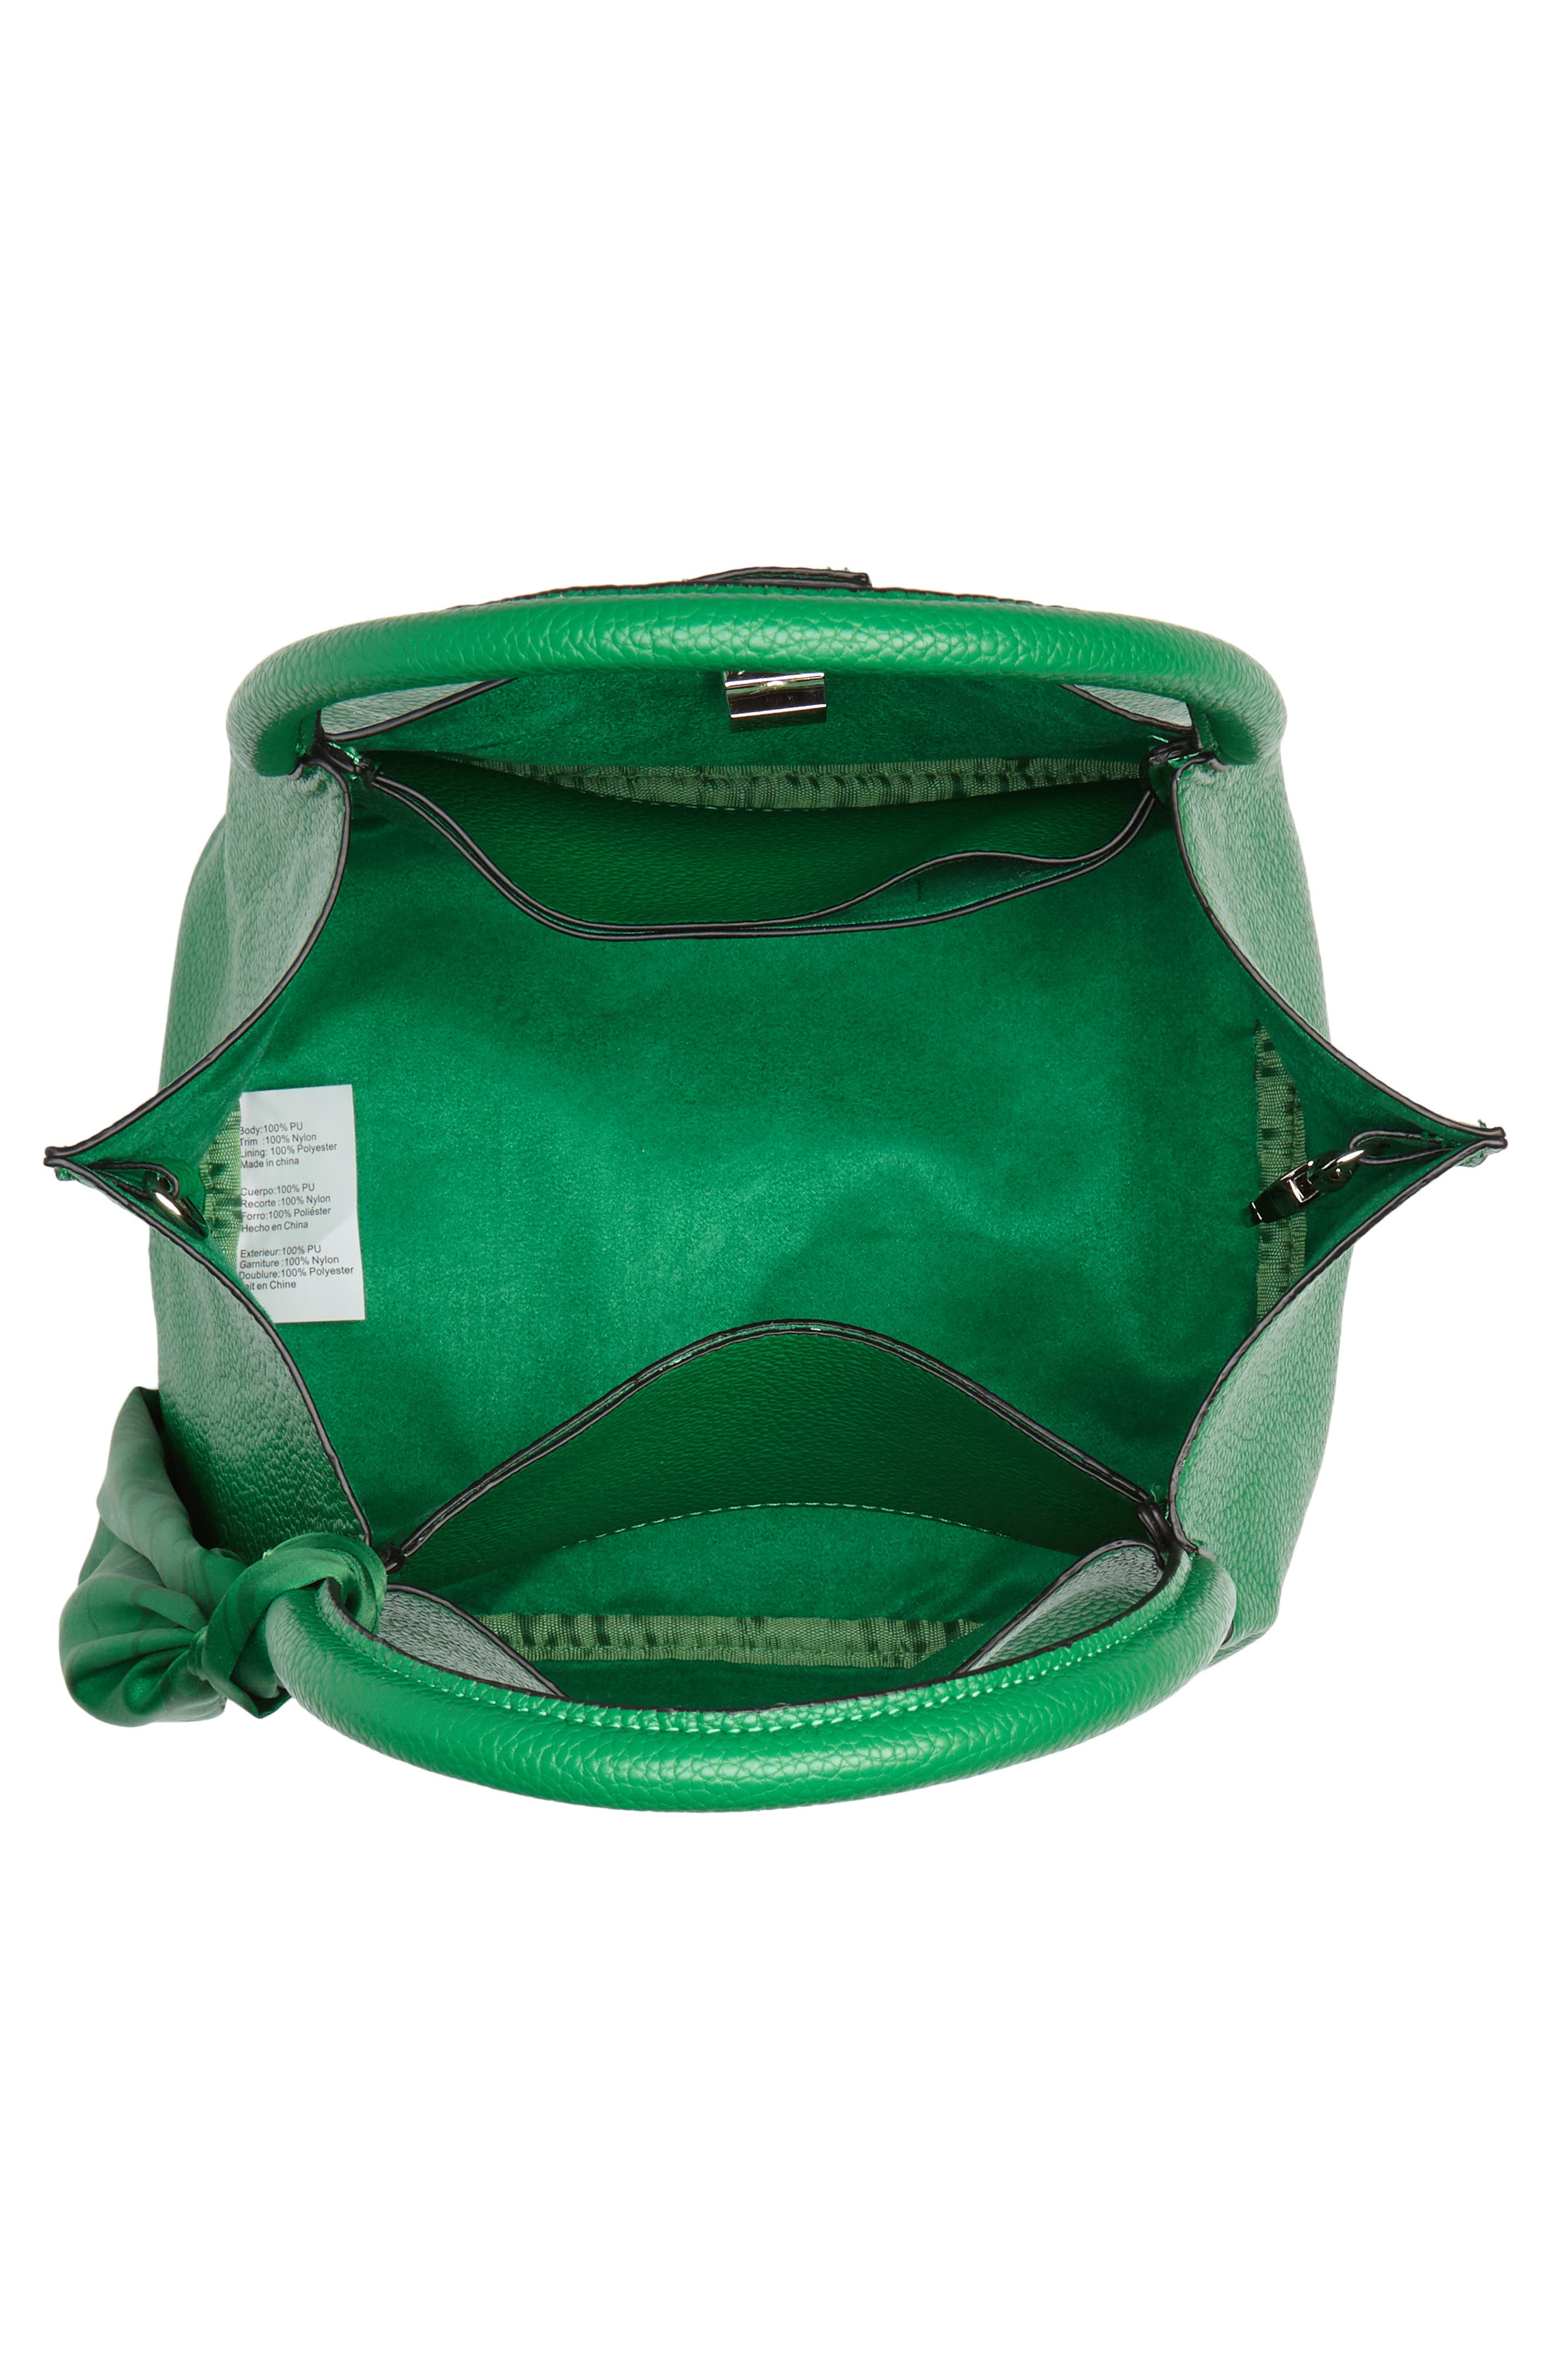 Medium Faux Leather Satchel with Scarf,                             Alternate thumbnail 4, color,                             Green